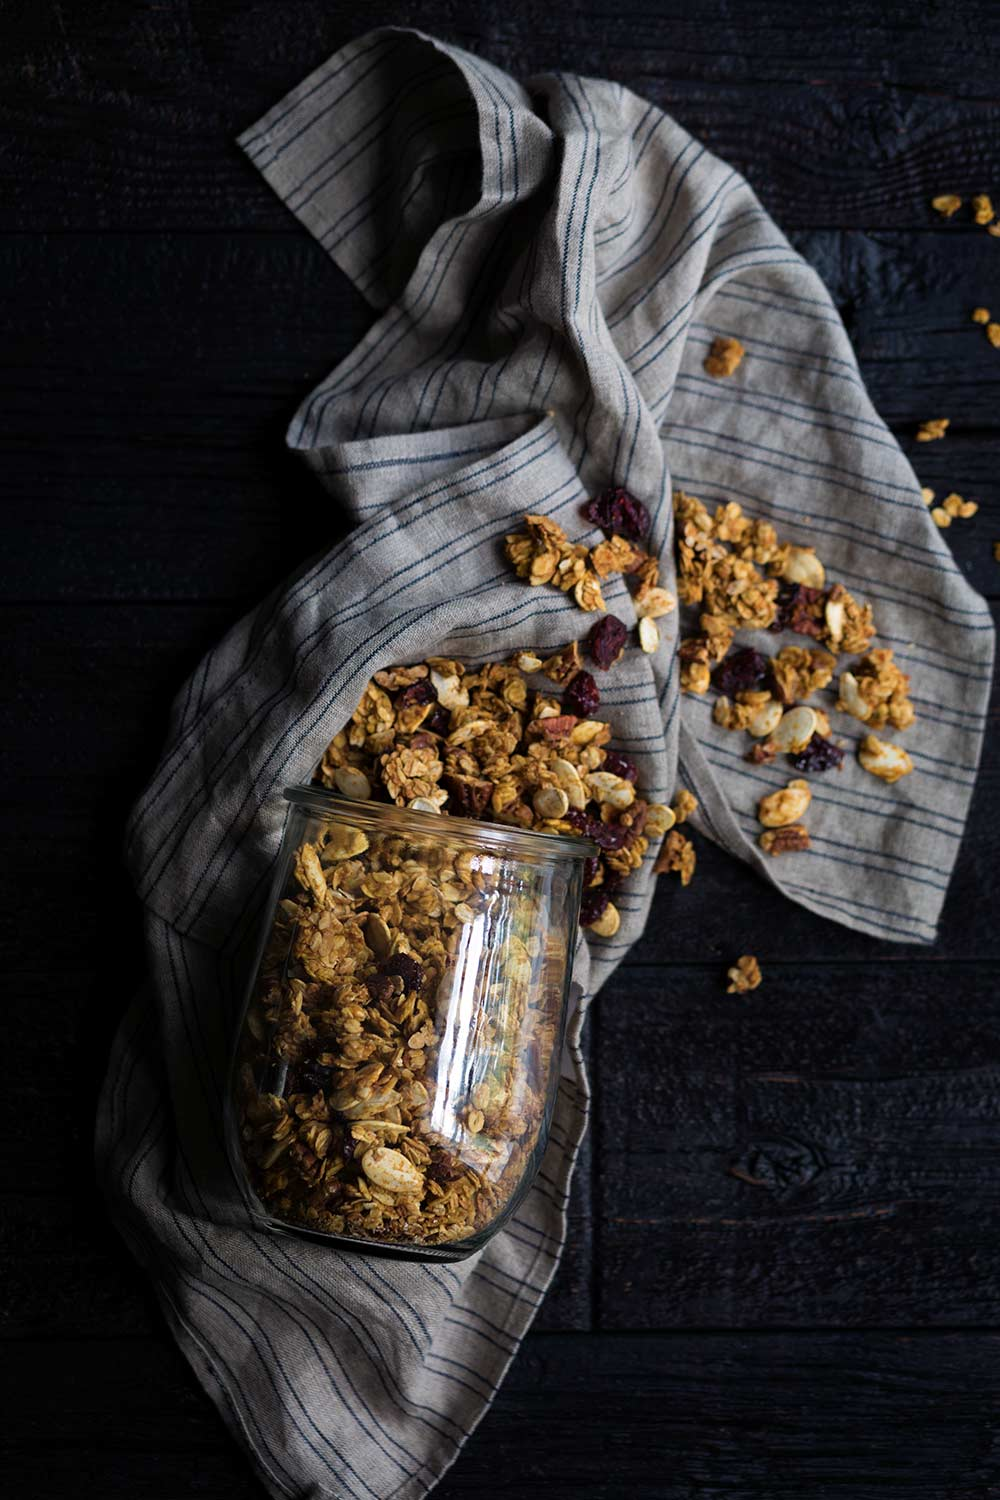 A photo of healthy, homemade pumpkin granola, spilling out of a jar.